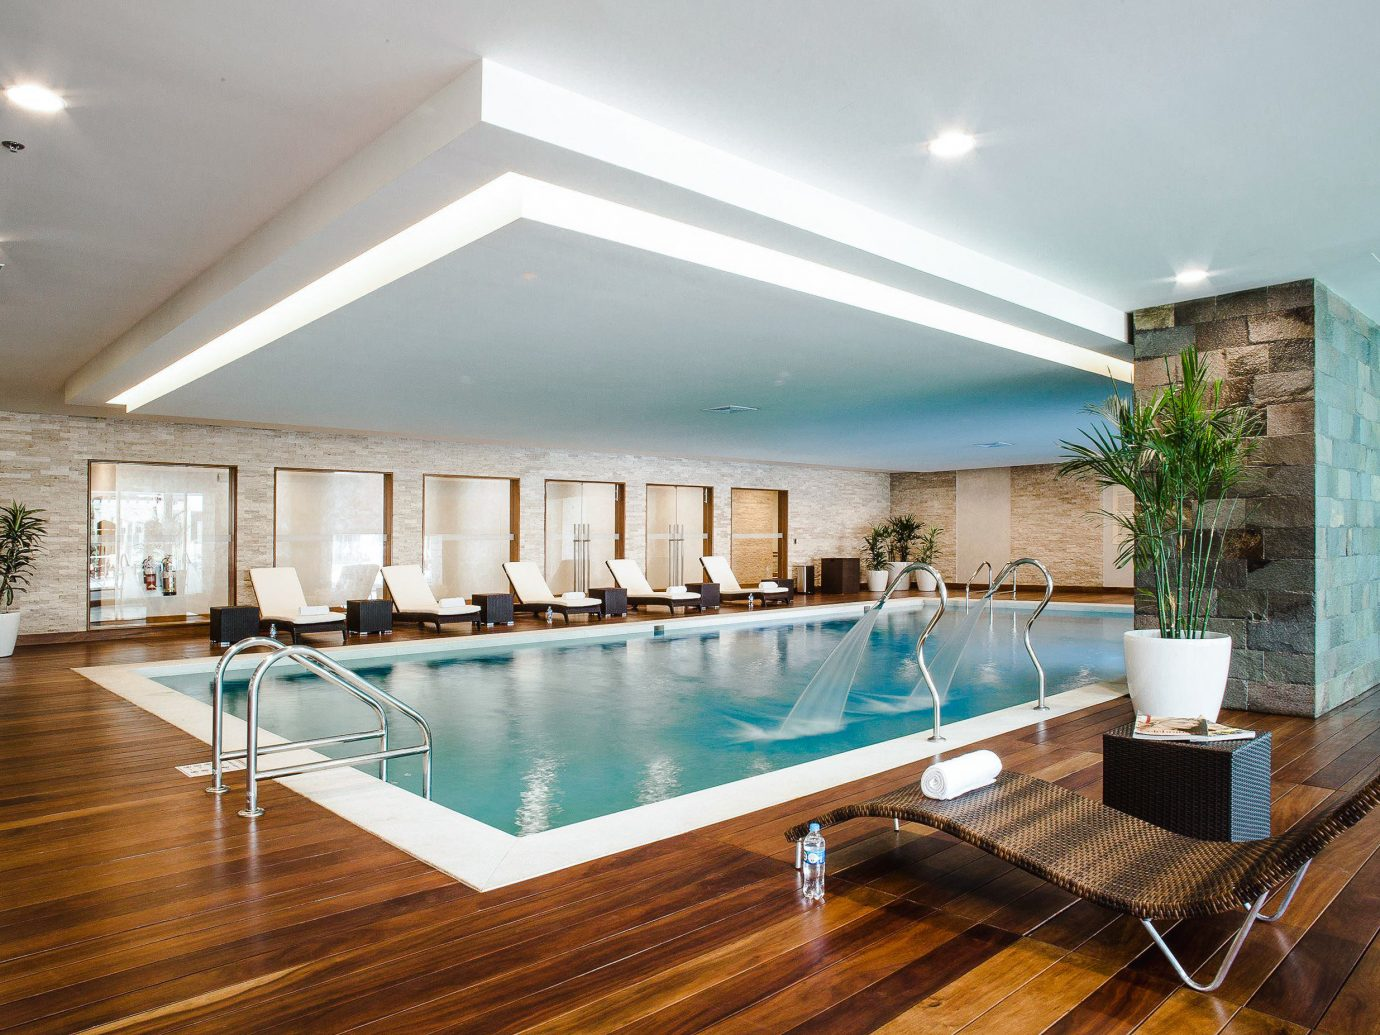 Boutique Hotels Hotels indoor floor ceiling wall swimming pool property room interior design real estate estate apartment condominium daylighting leisure penthouse apartment home house leisure centre window flooring Resort amenity Lobby wood furniture area Island